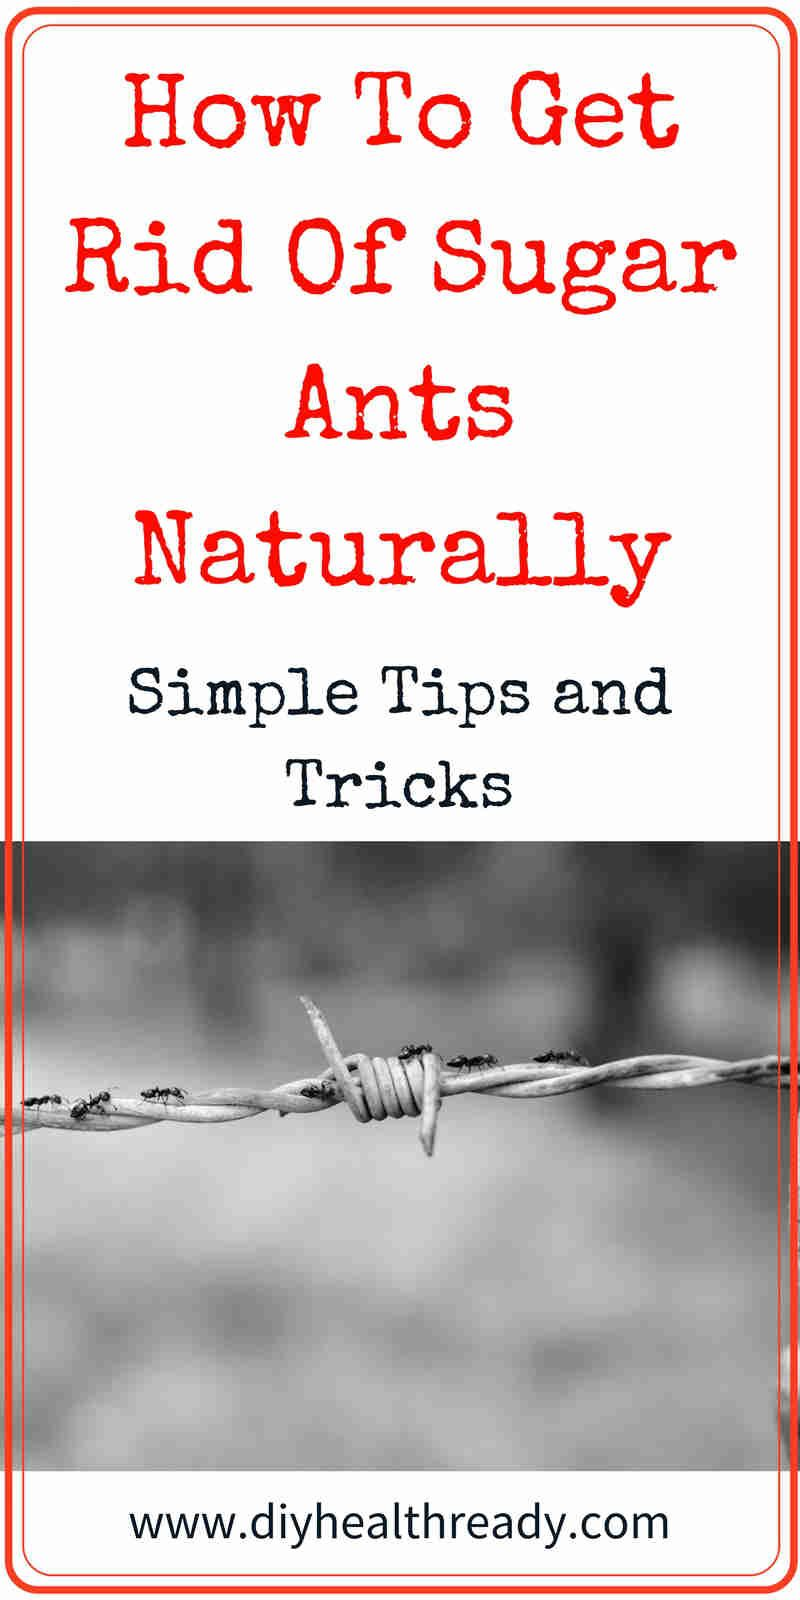 How To Get Rid Of Sugar Ants Naturally: Simple Tips and ...